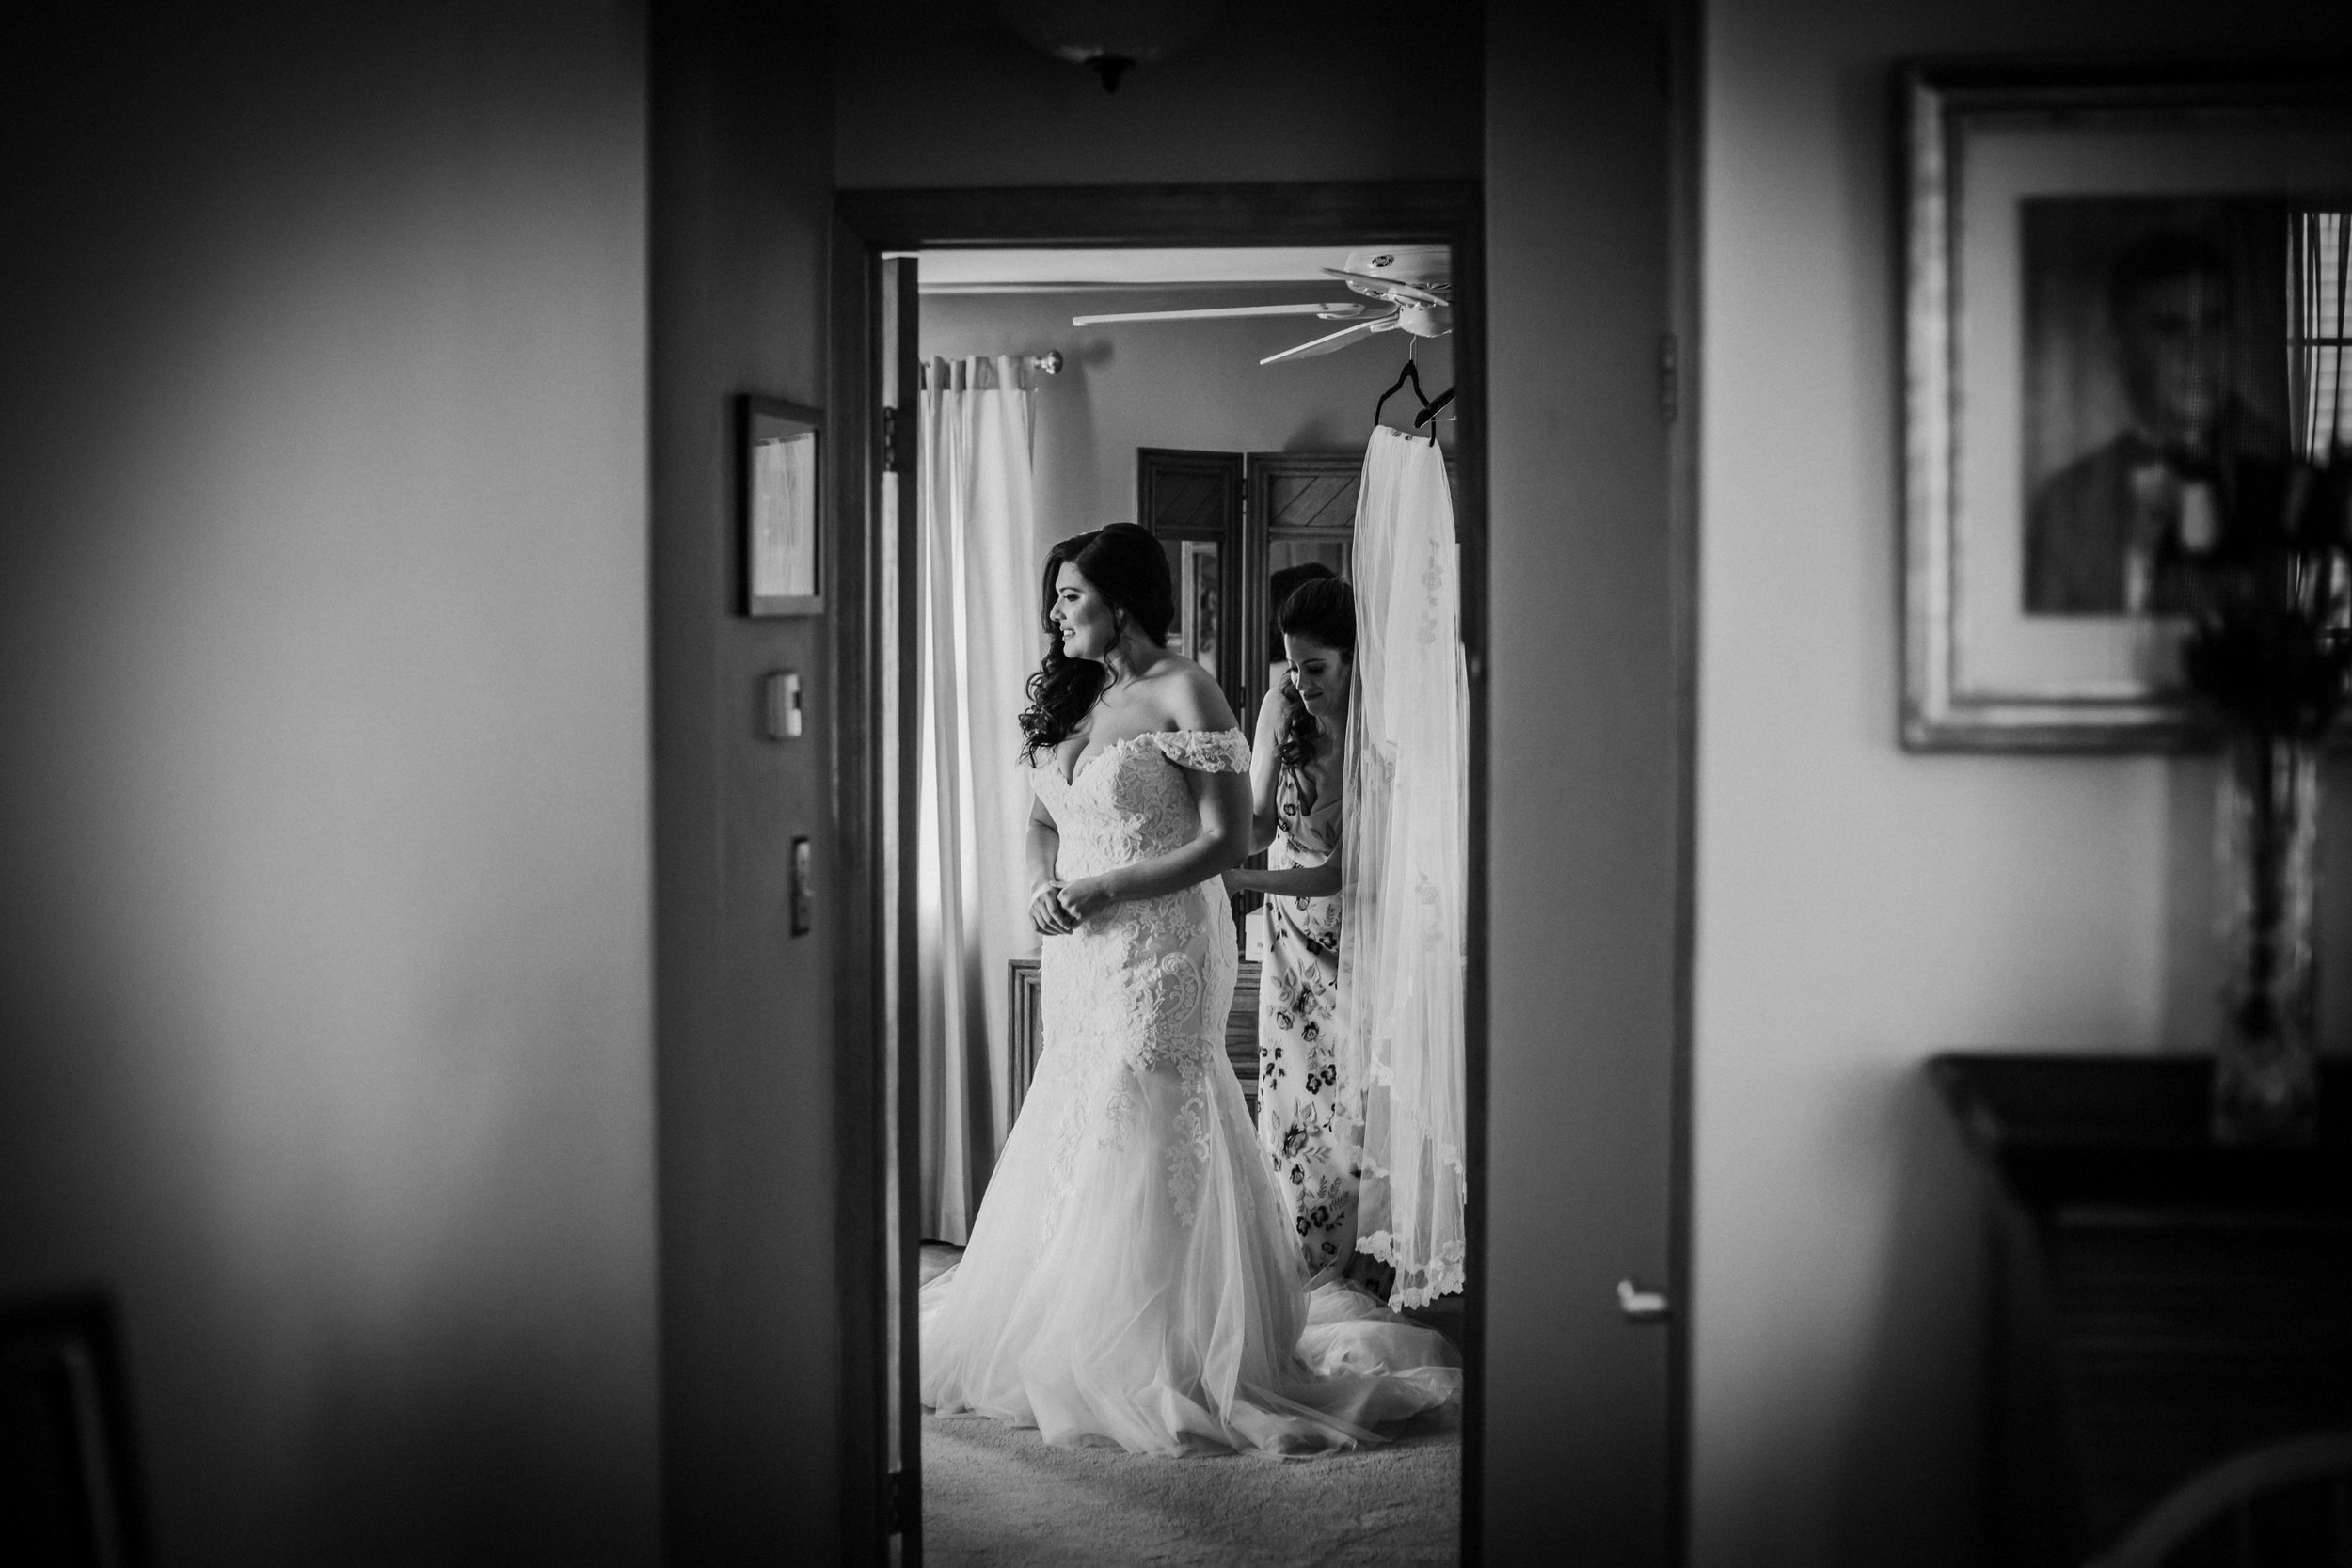 New-Jersey-Wedding-Photographer-Park-Savoy-Nicole&Zane-GettingReadyBW-36.jpg